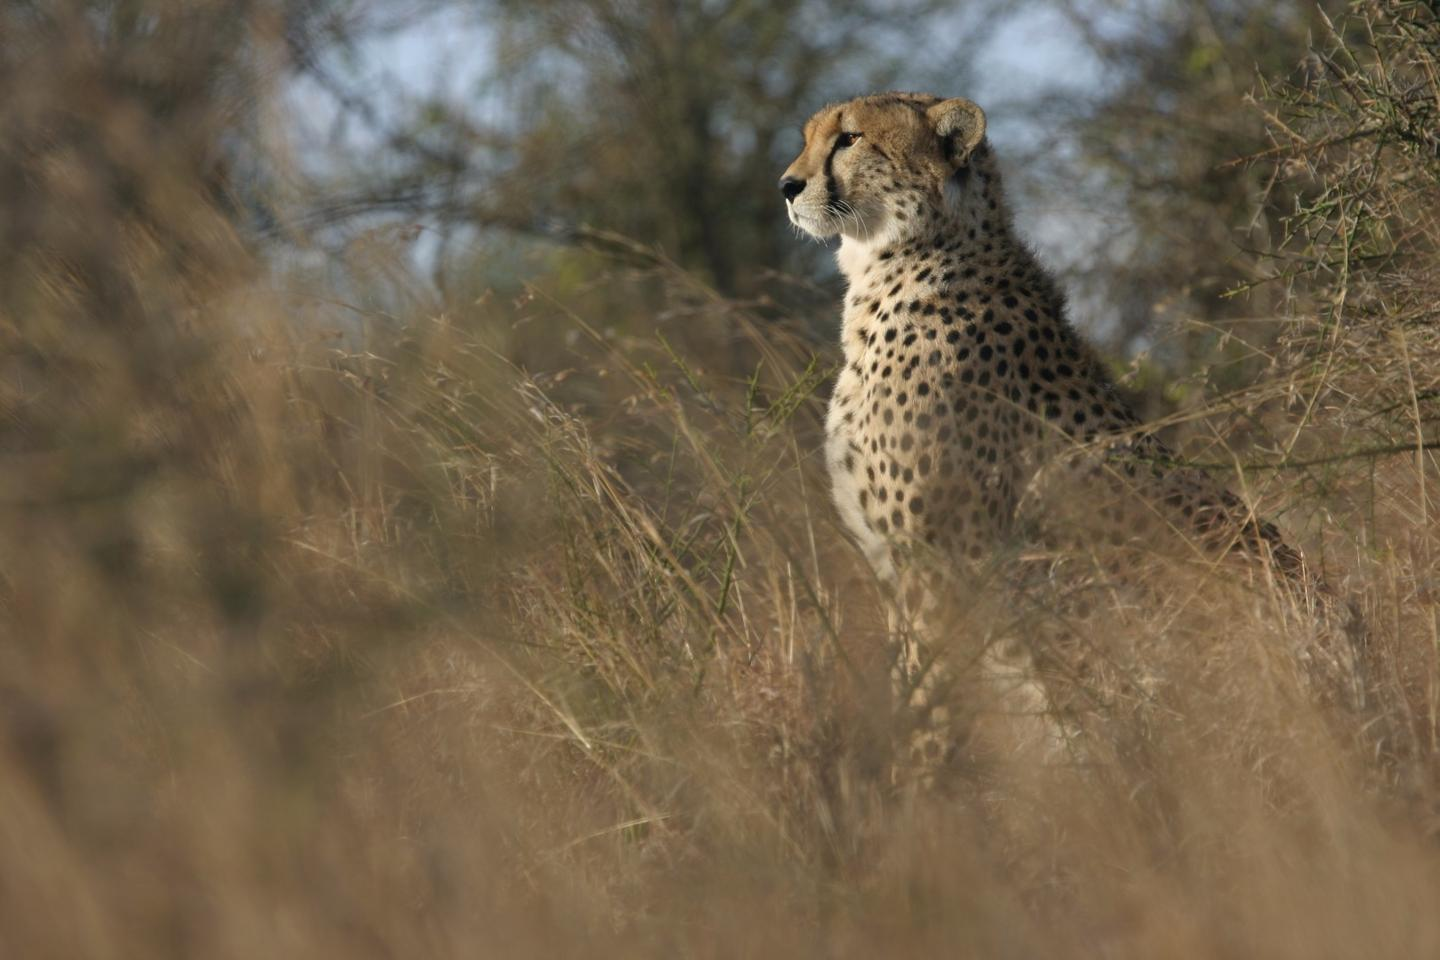 The study represents the most comprehensive analysis of cheetah status to date, according to the researchers